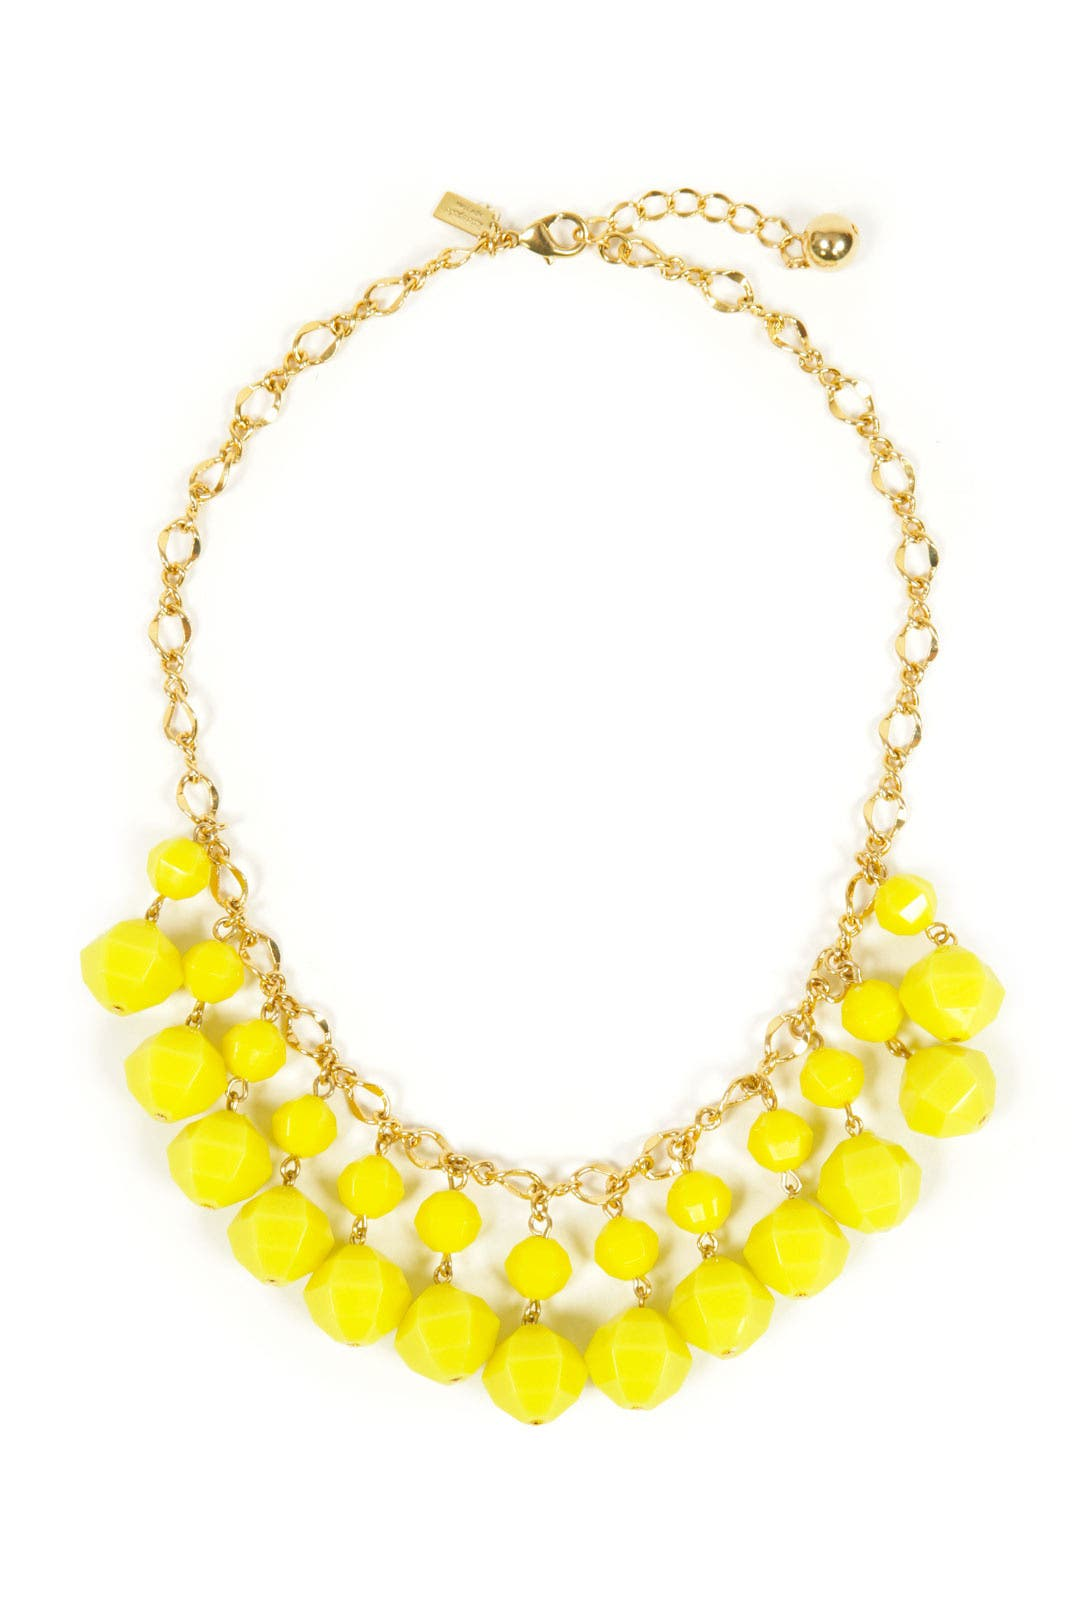 Cut to the Chase Necklace by kate spade new york accessories